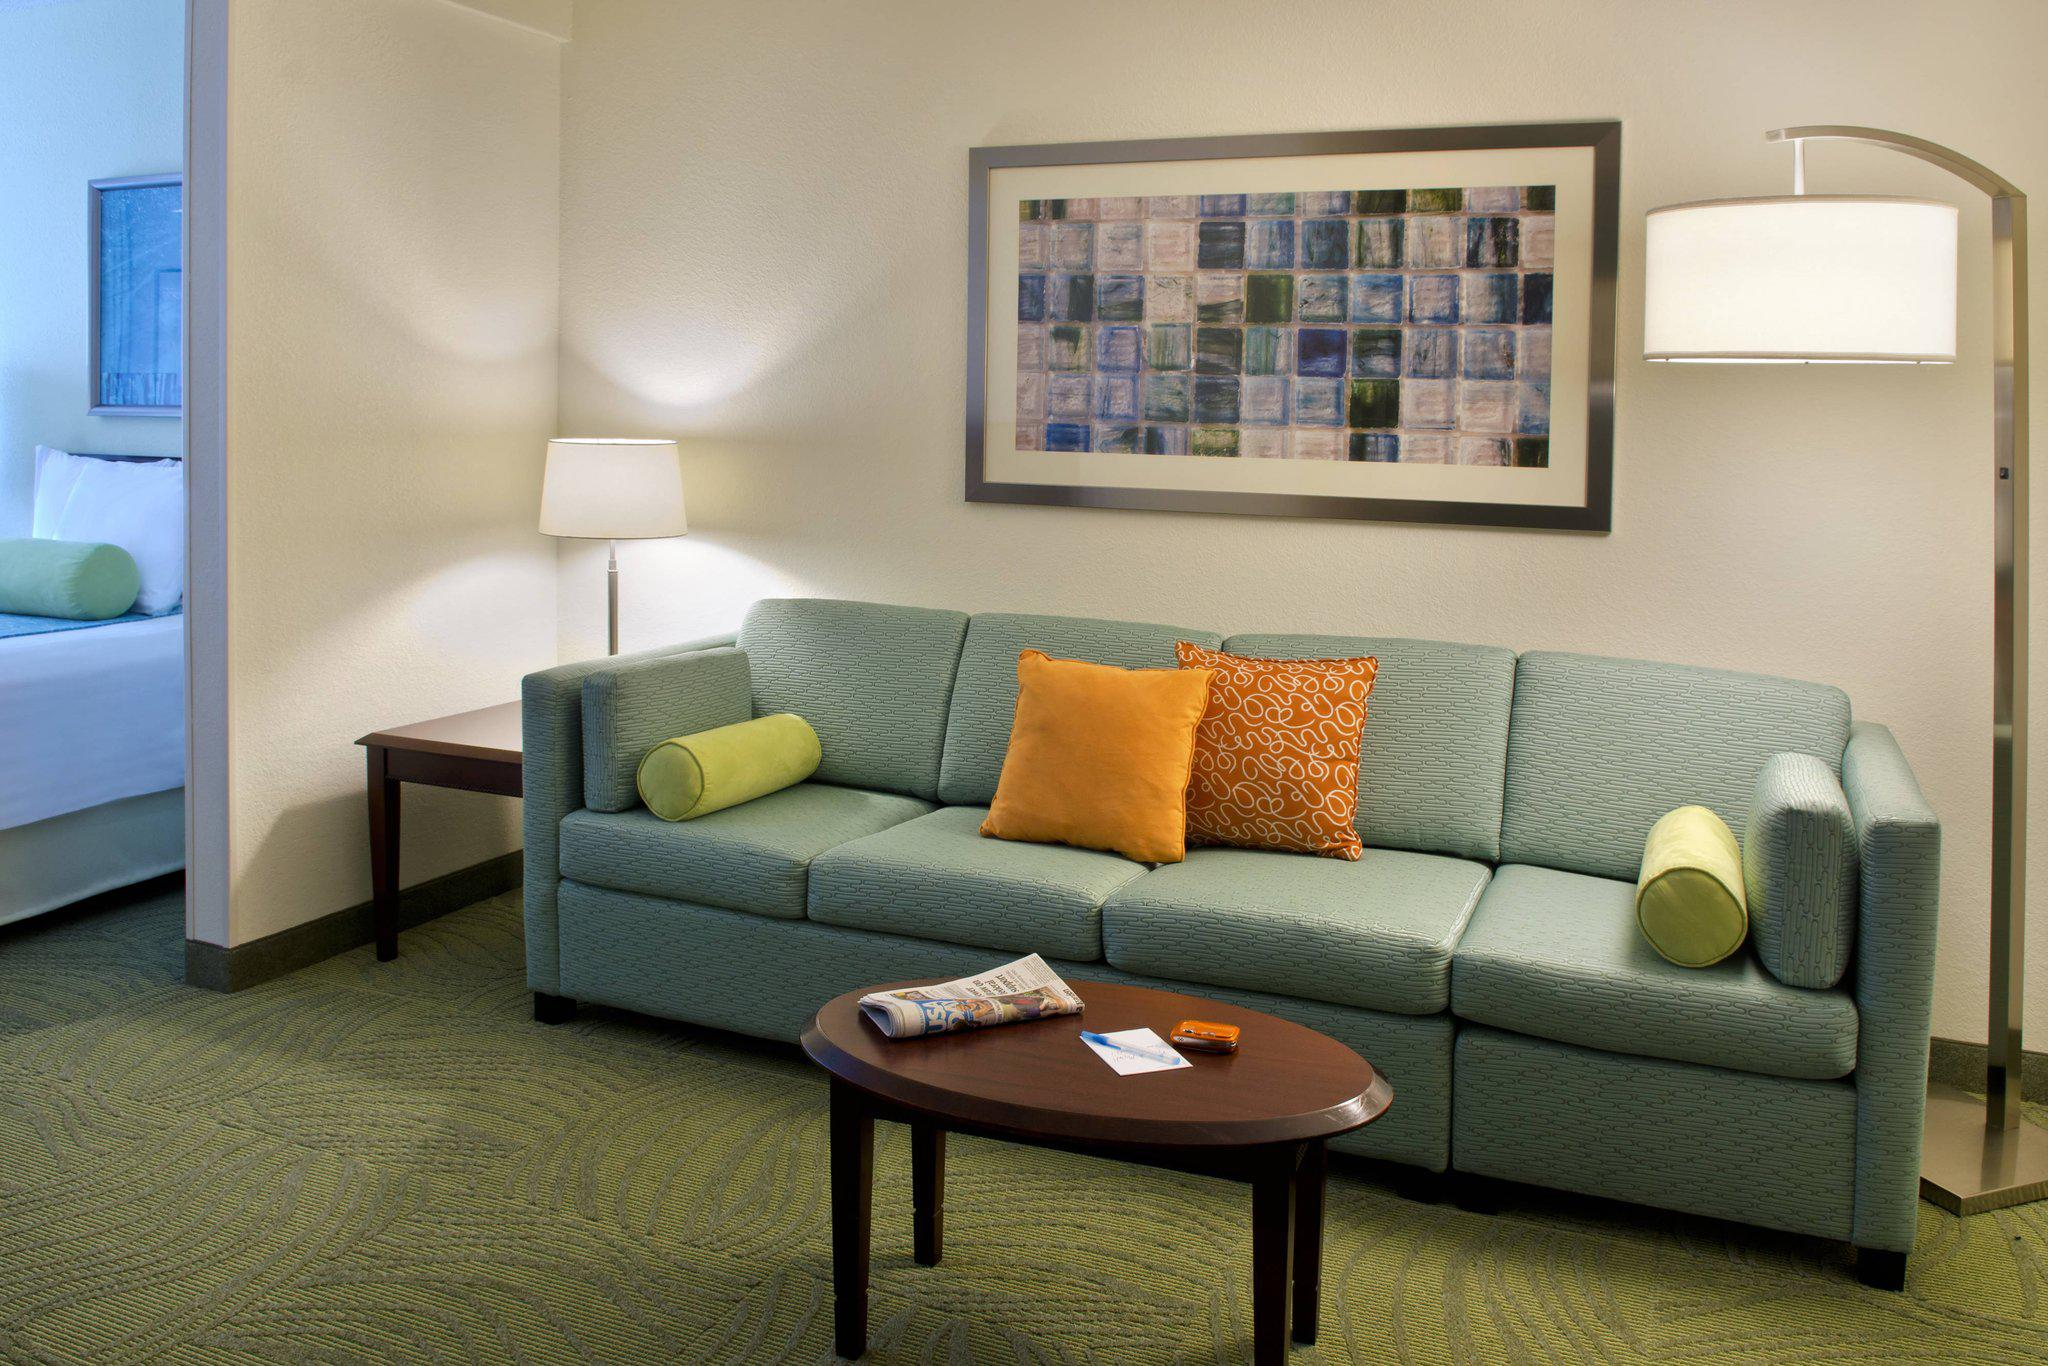 SpringHill Suites by Marriott Boston Andover